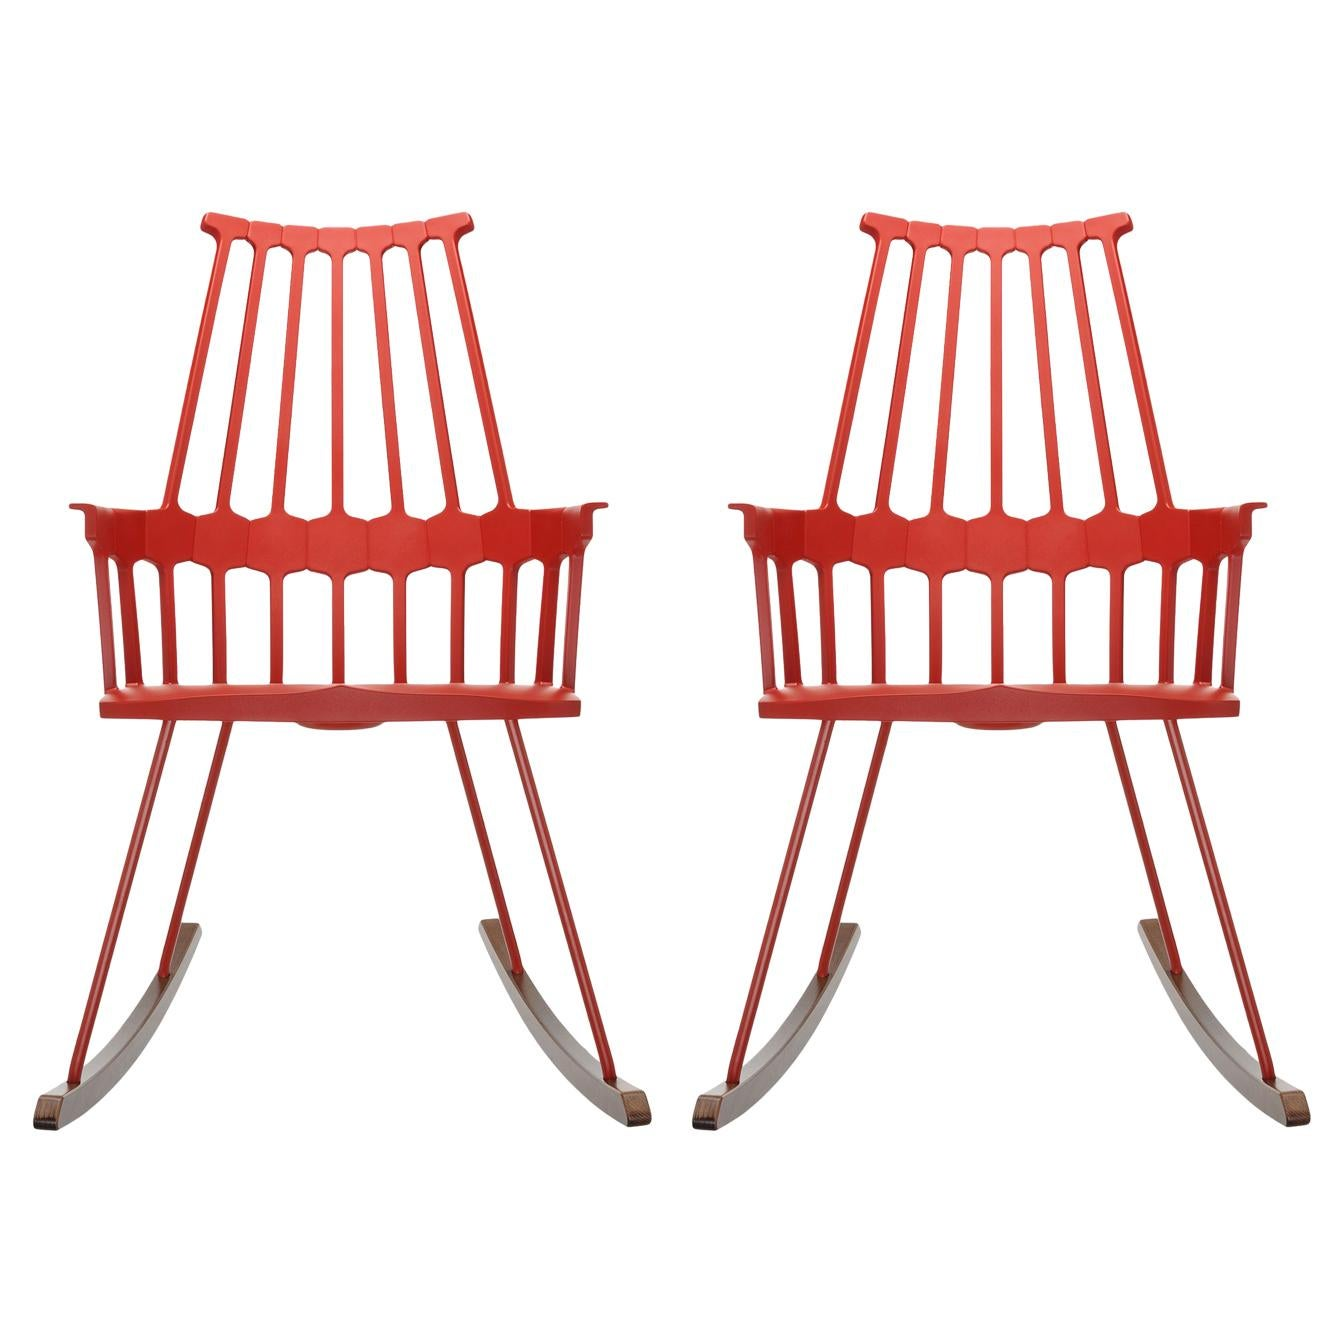 Set of 2 Kartell Comback Rocking Chairs in Orange Red by Patricia Urquiola